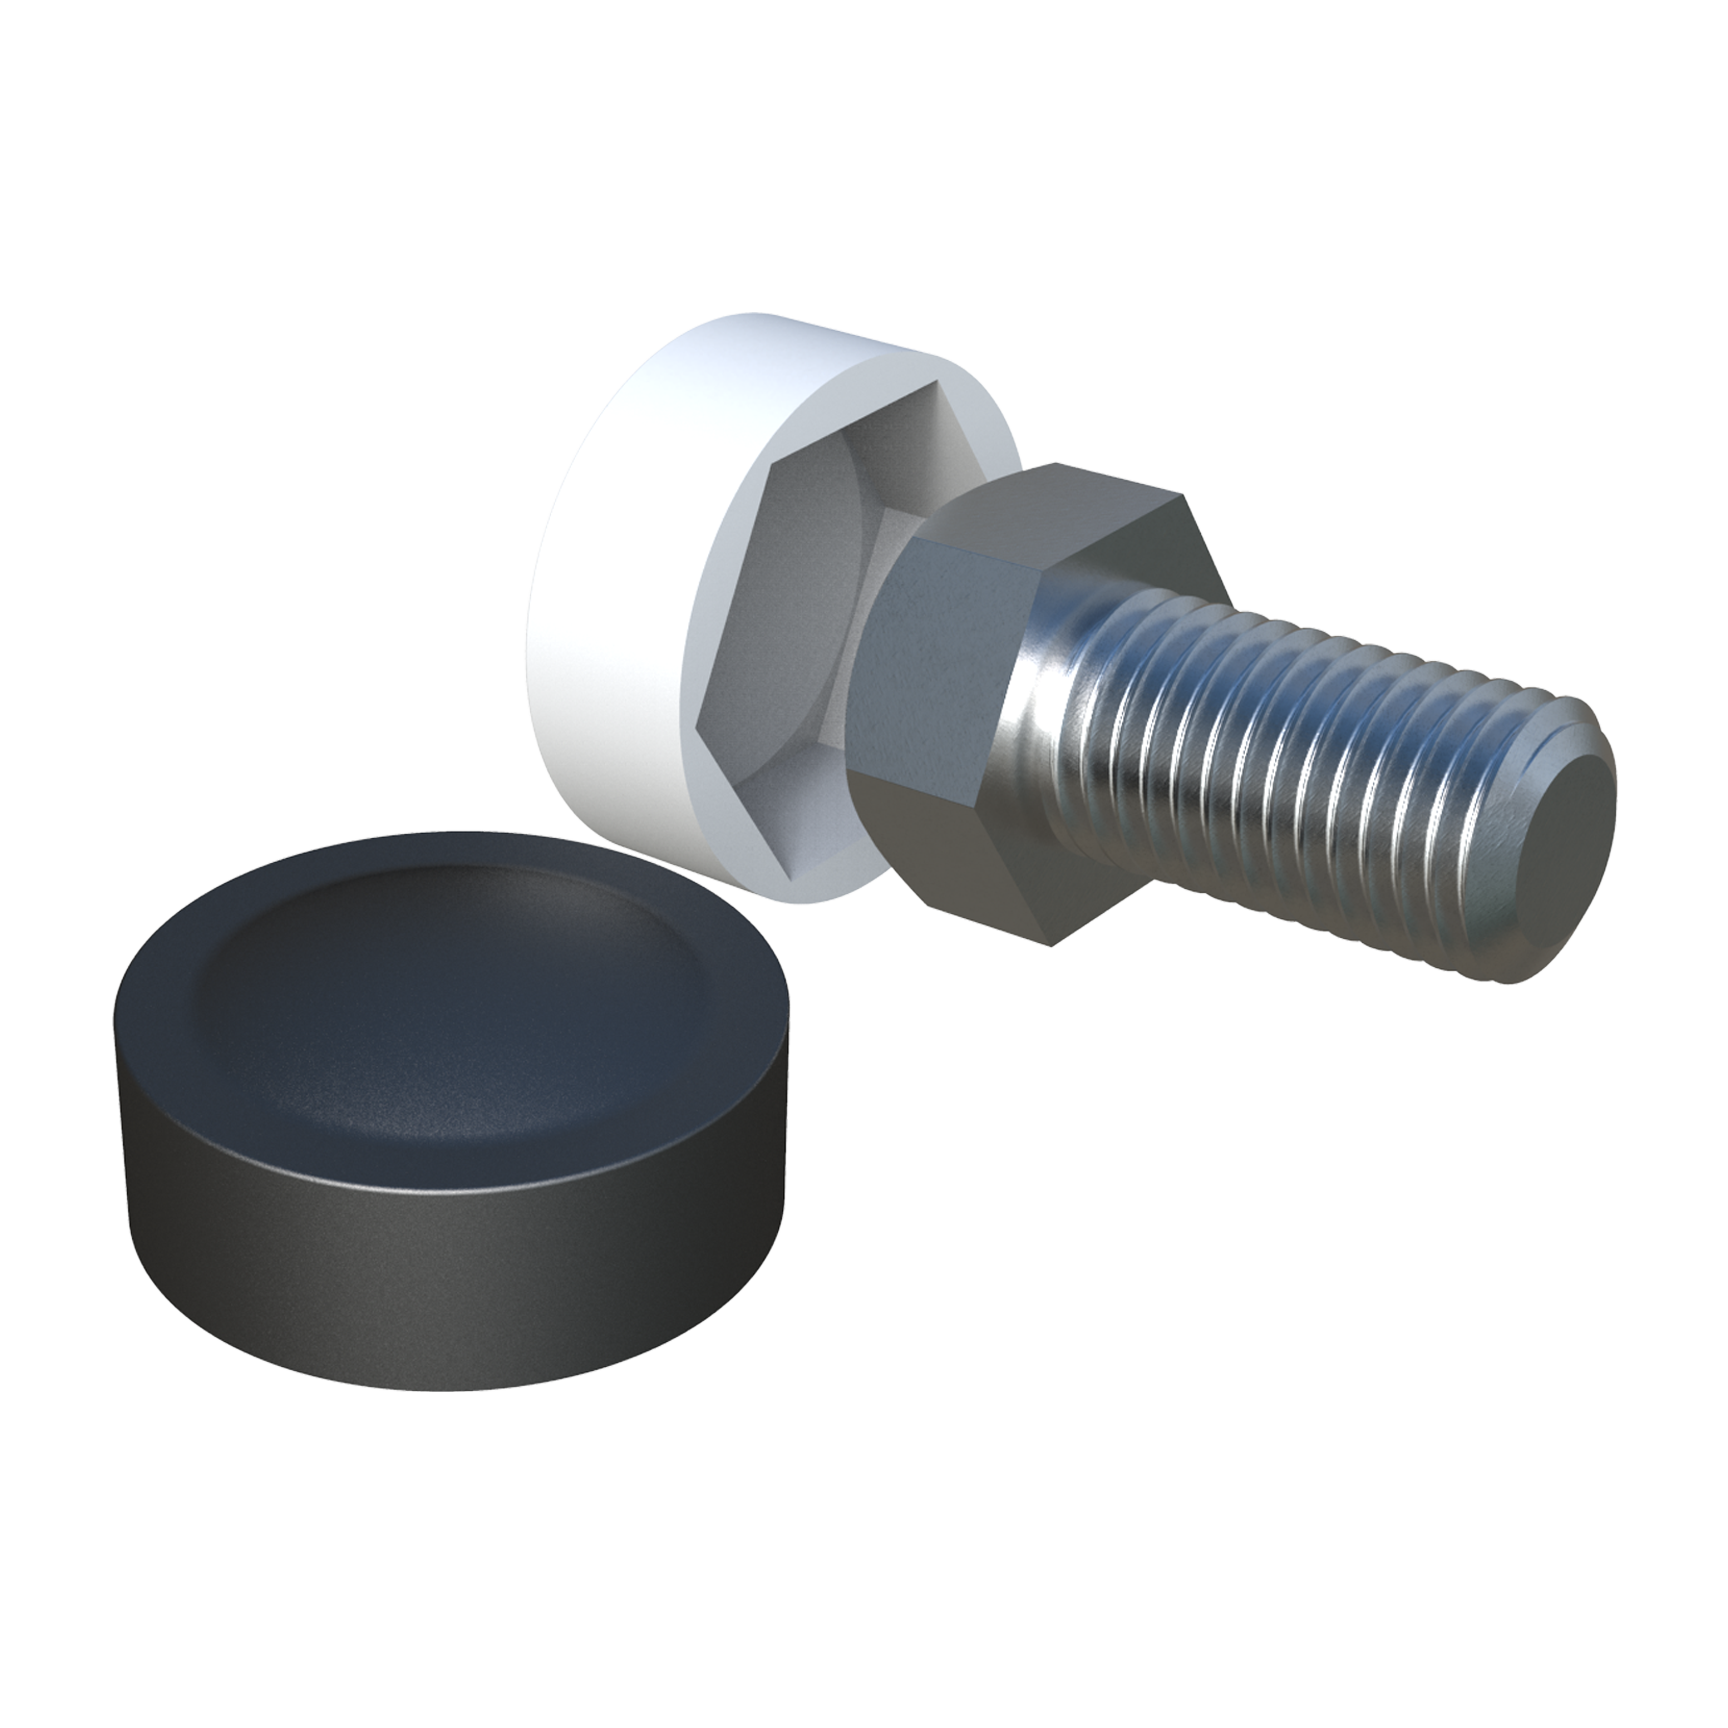 Cap for hex screws